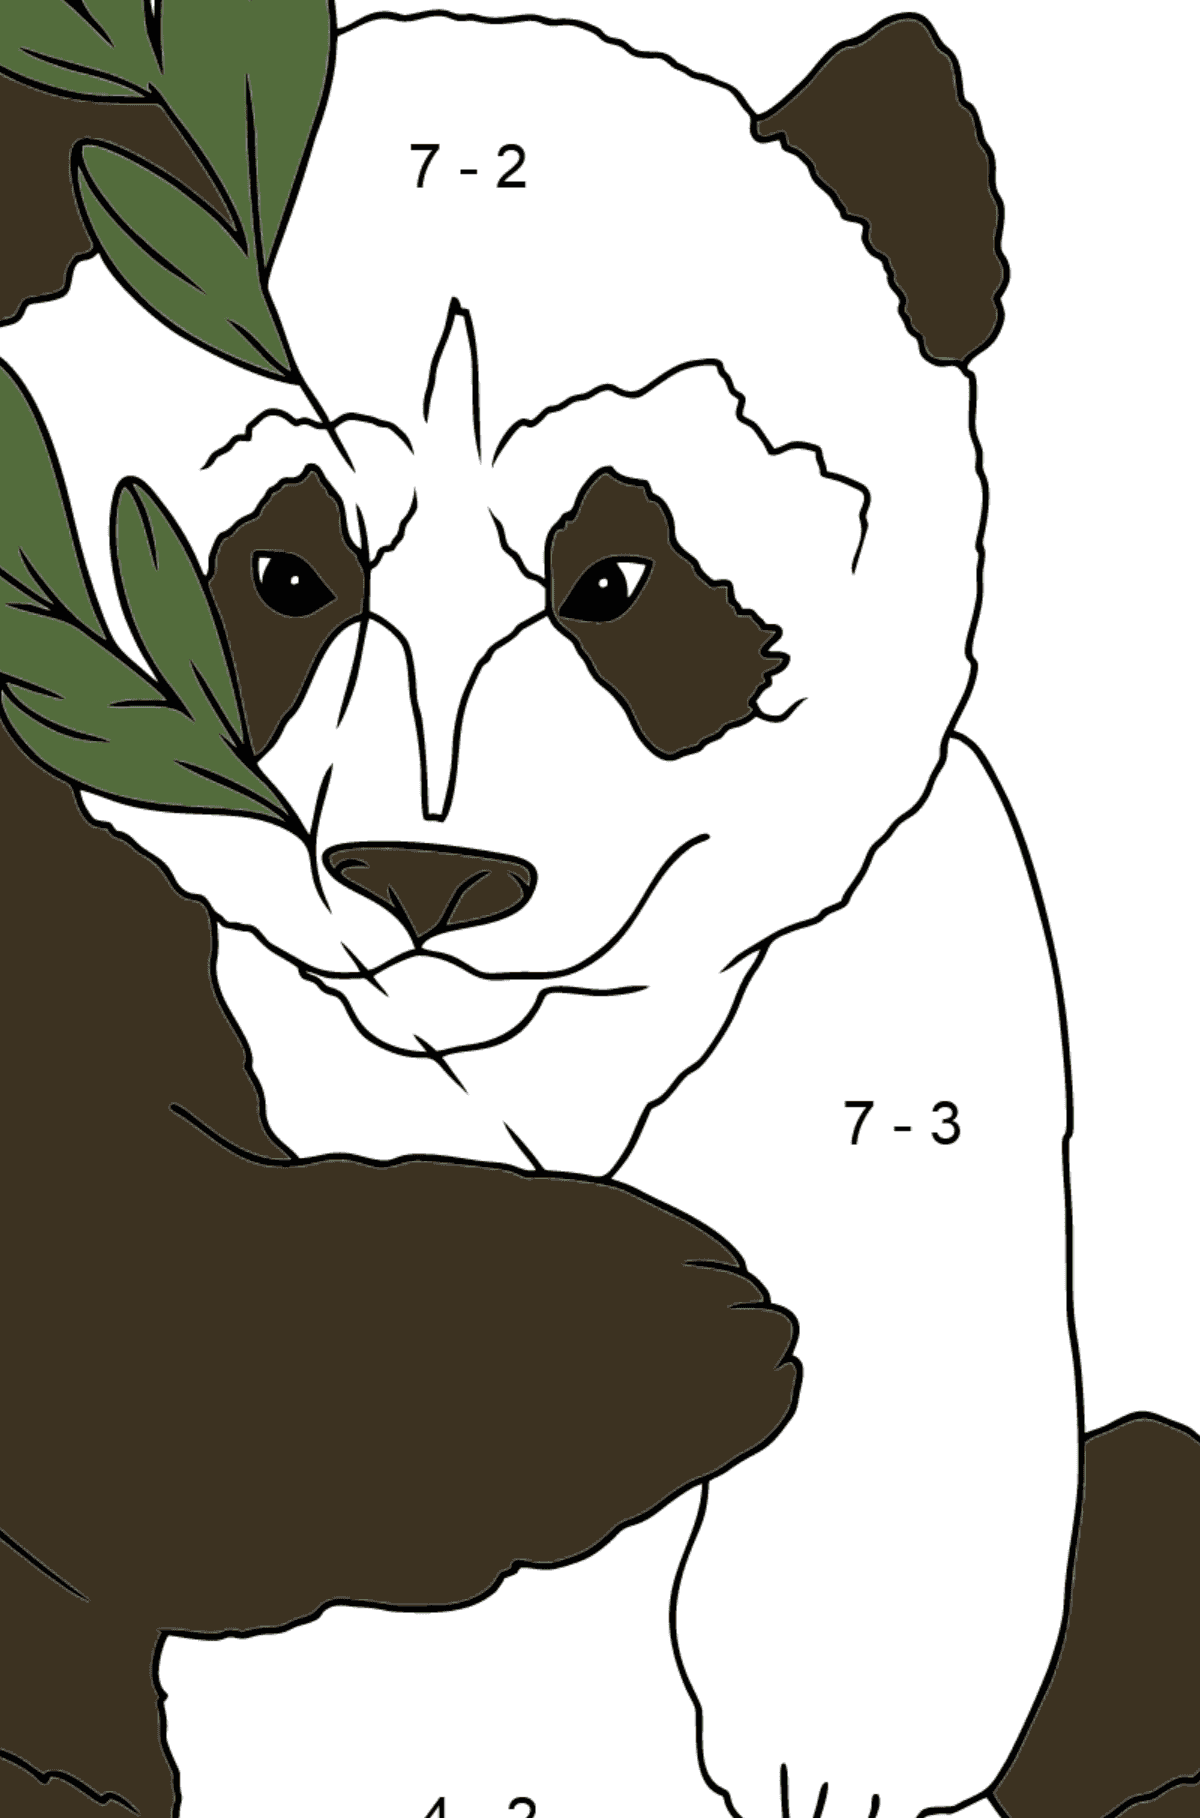 Coloring Page - A Panda is Hugging Bamboo Leaves - Math Coloring - Subtraction for Children